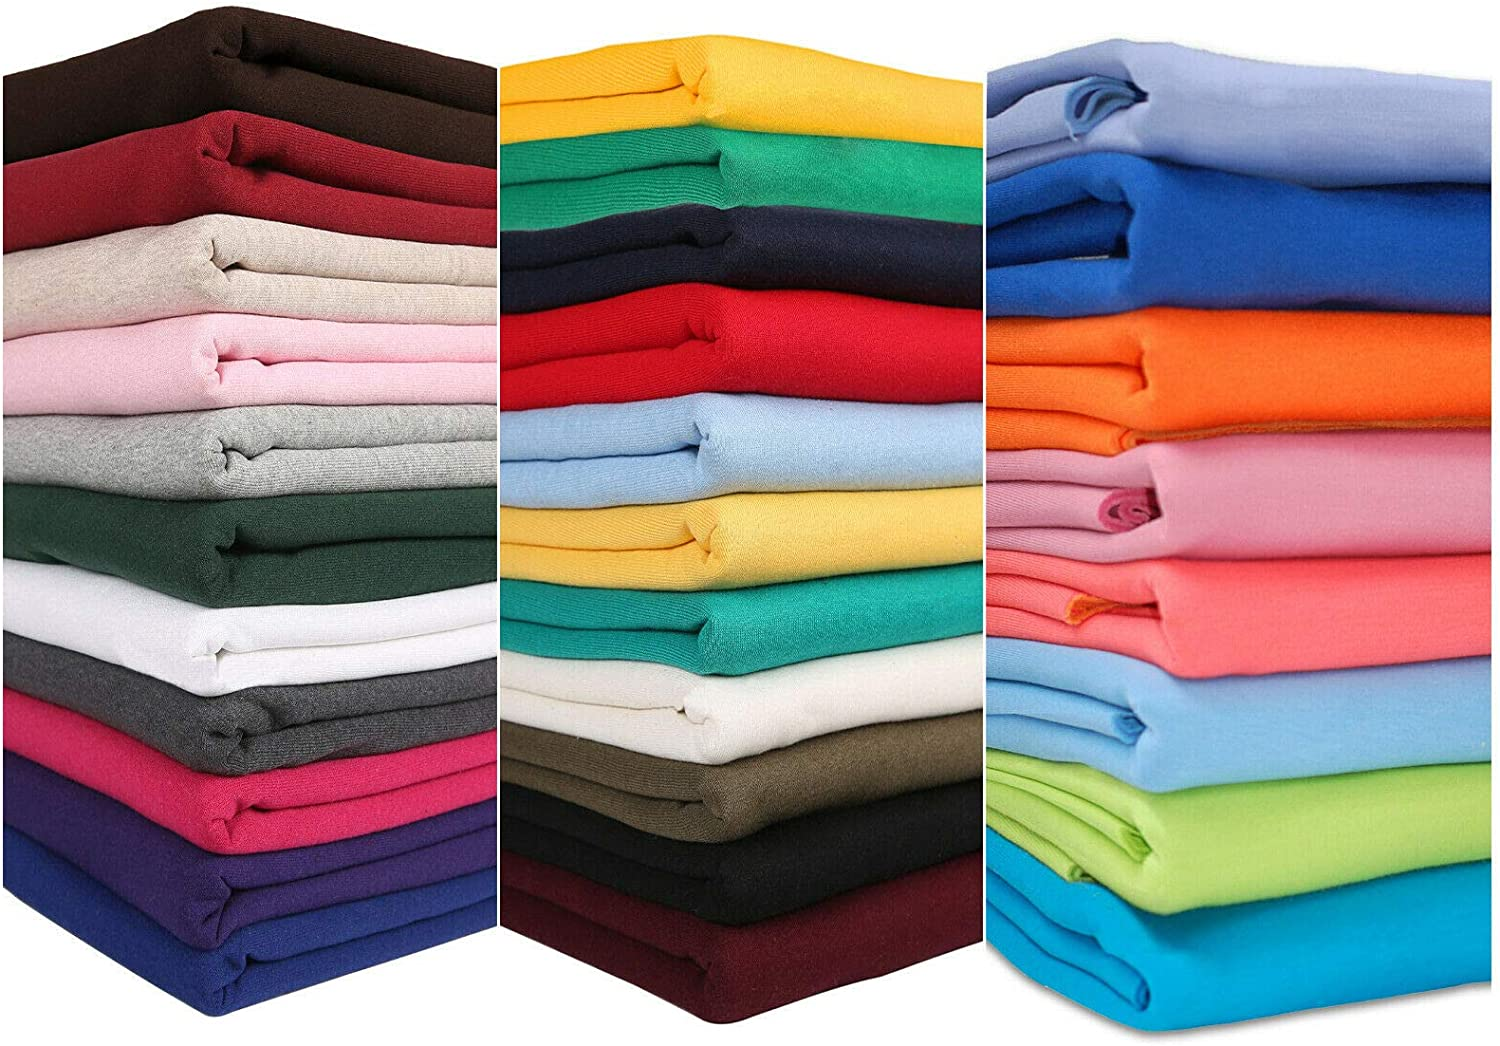 Sweatshirt Sale SALE% OFF Fabric for Hoddies and Thi Dressmaking. free Colours of 30